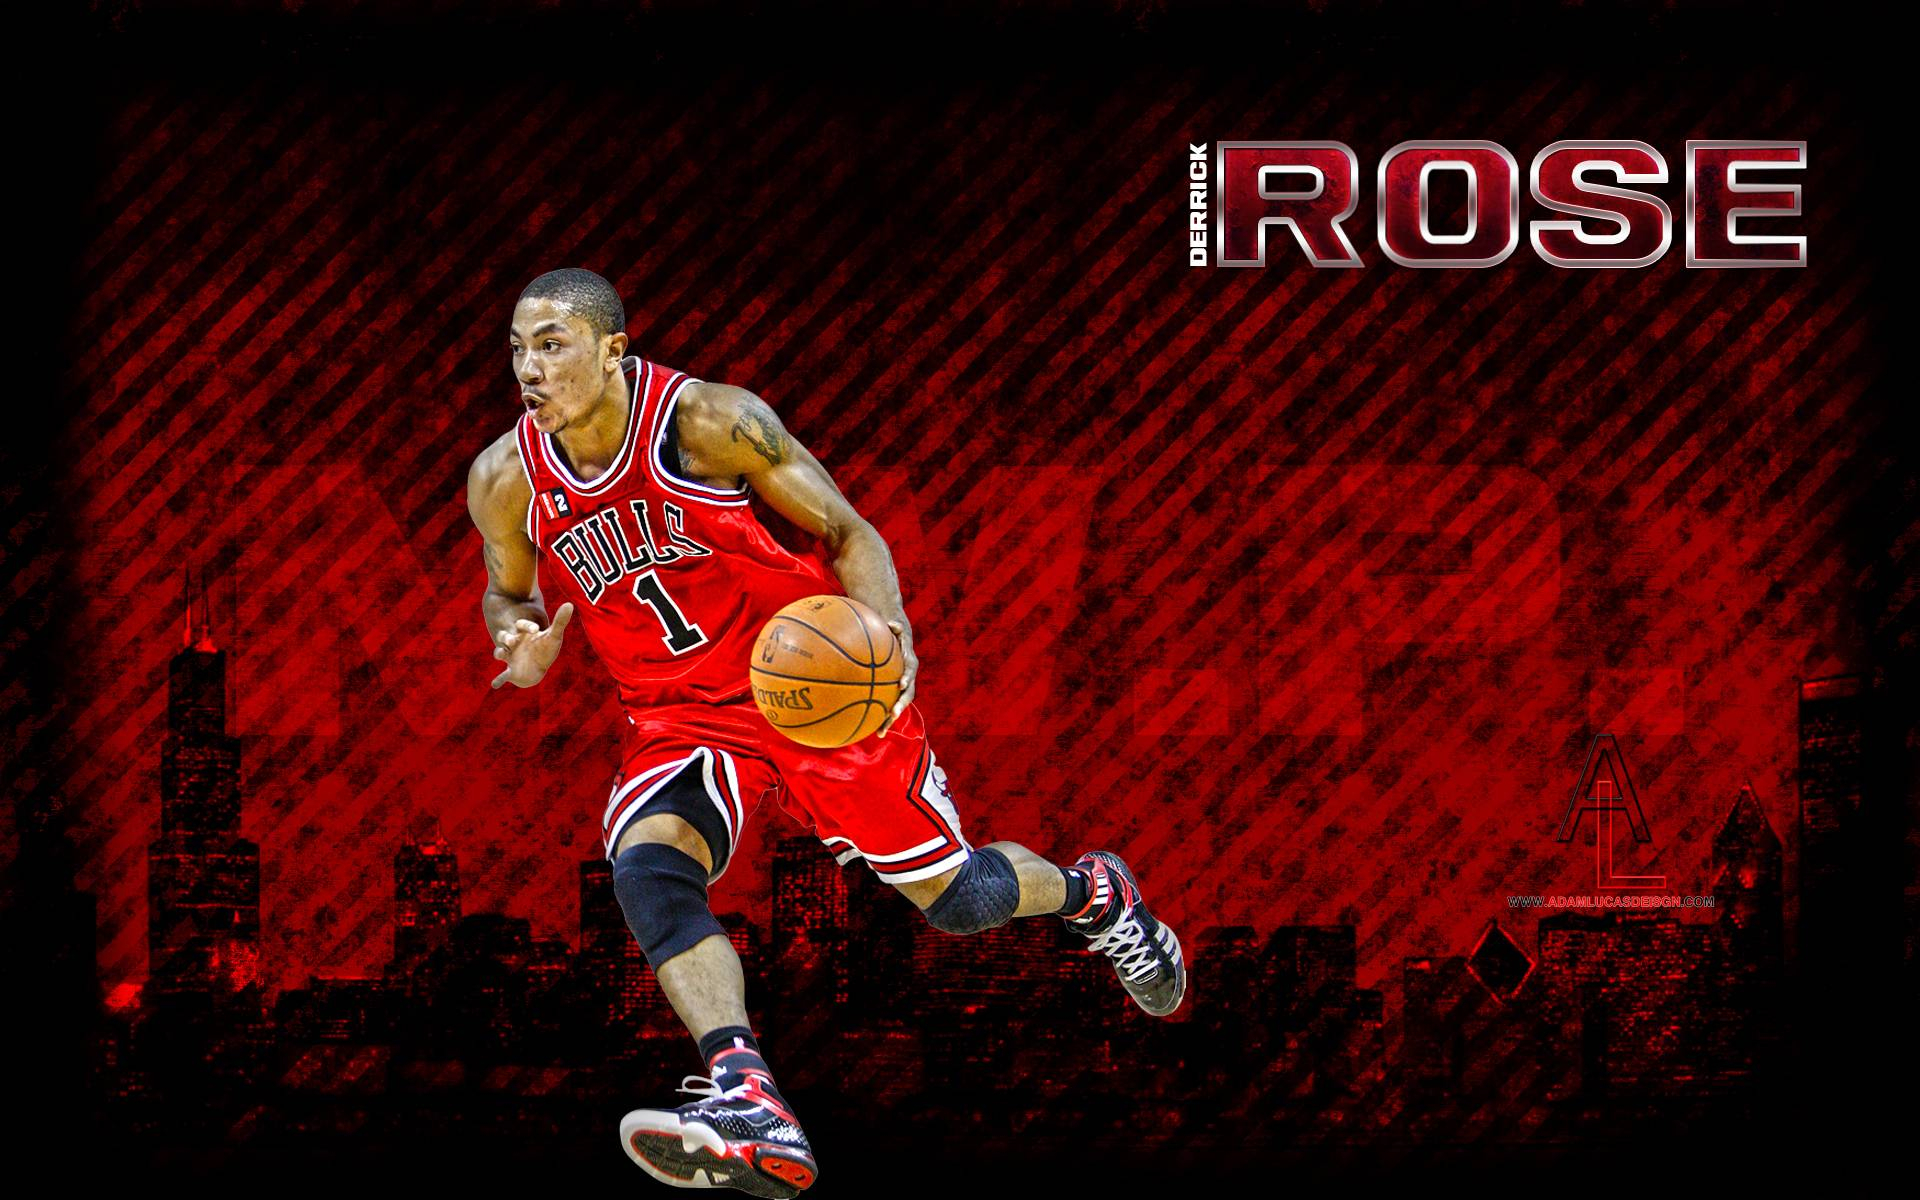 Derek Rose Wallpaper 1920x1200